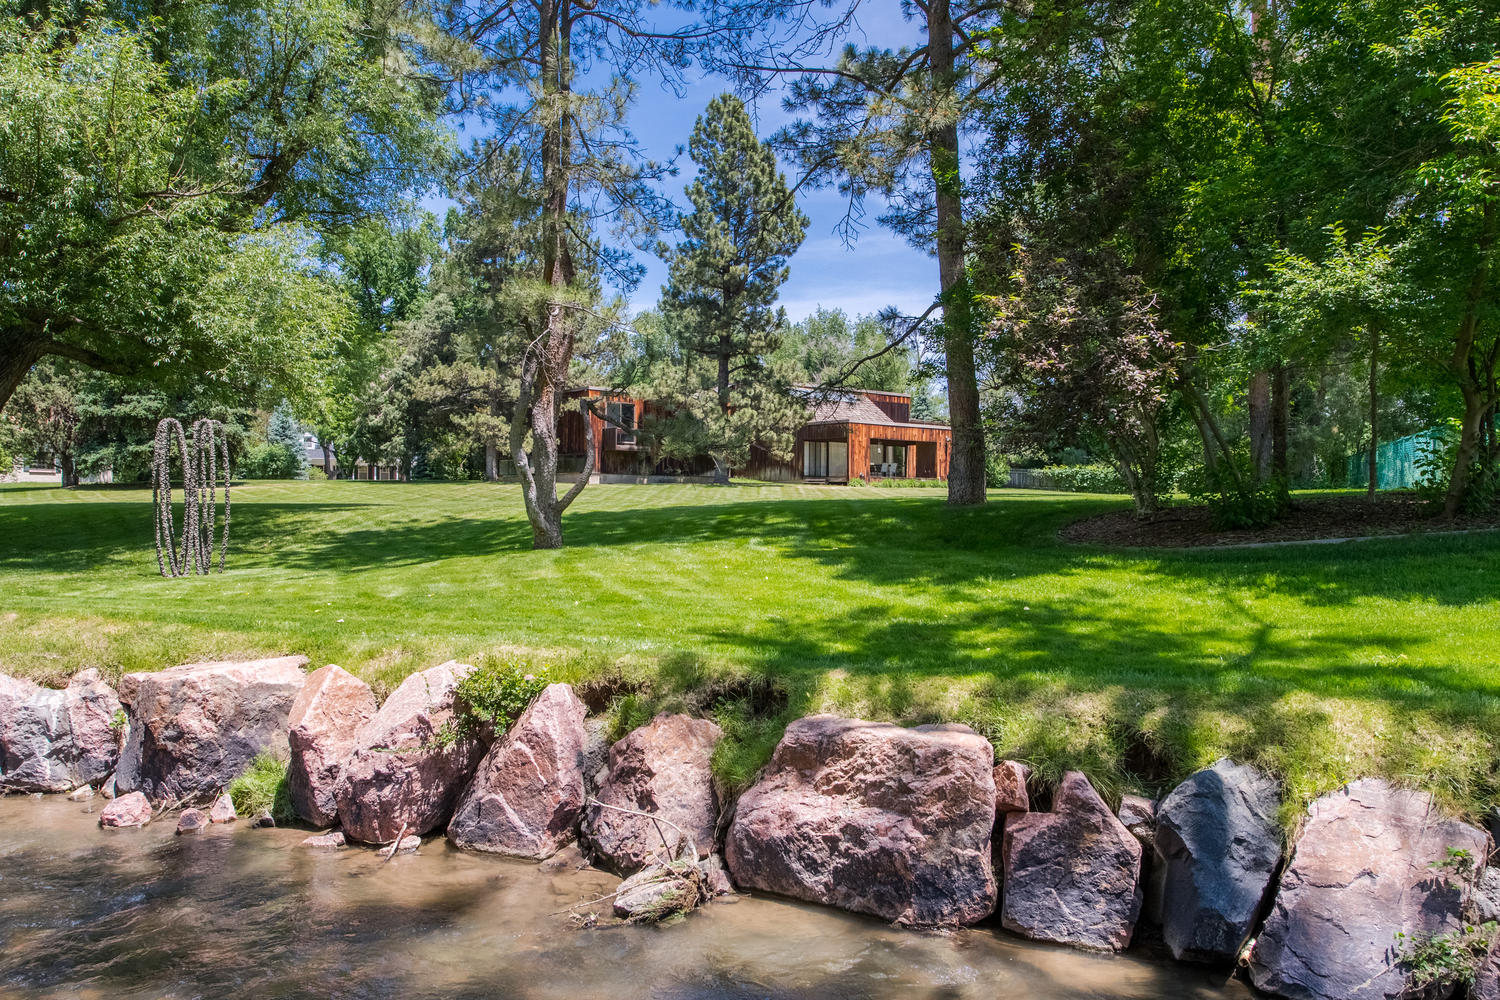 Single Family Home for Sale at Renowned architects personal home on private one acre site 11 Martin Ln Cherry Hills Village, Colorado, 80113 United States